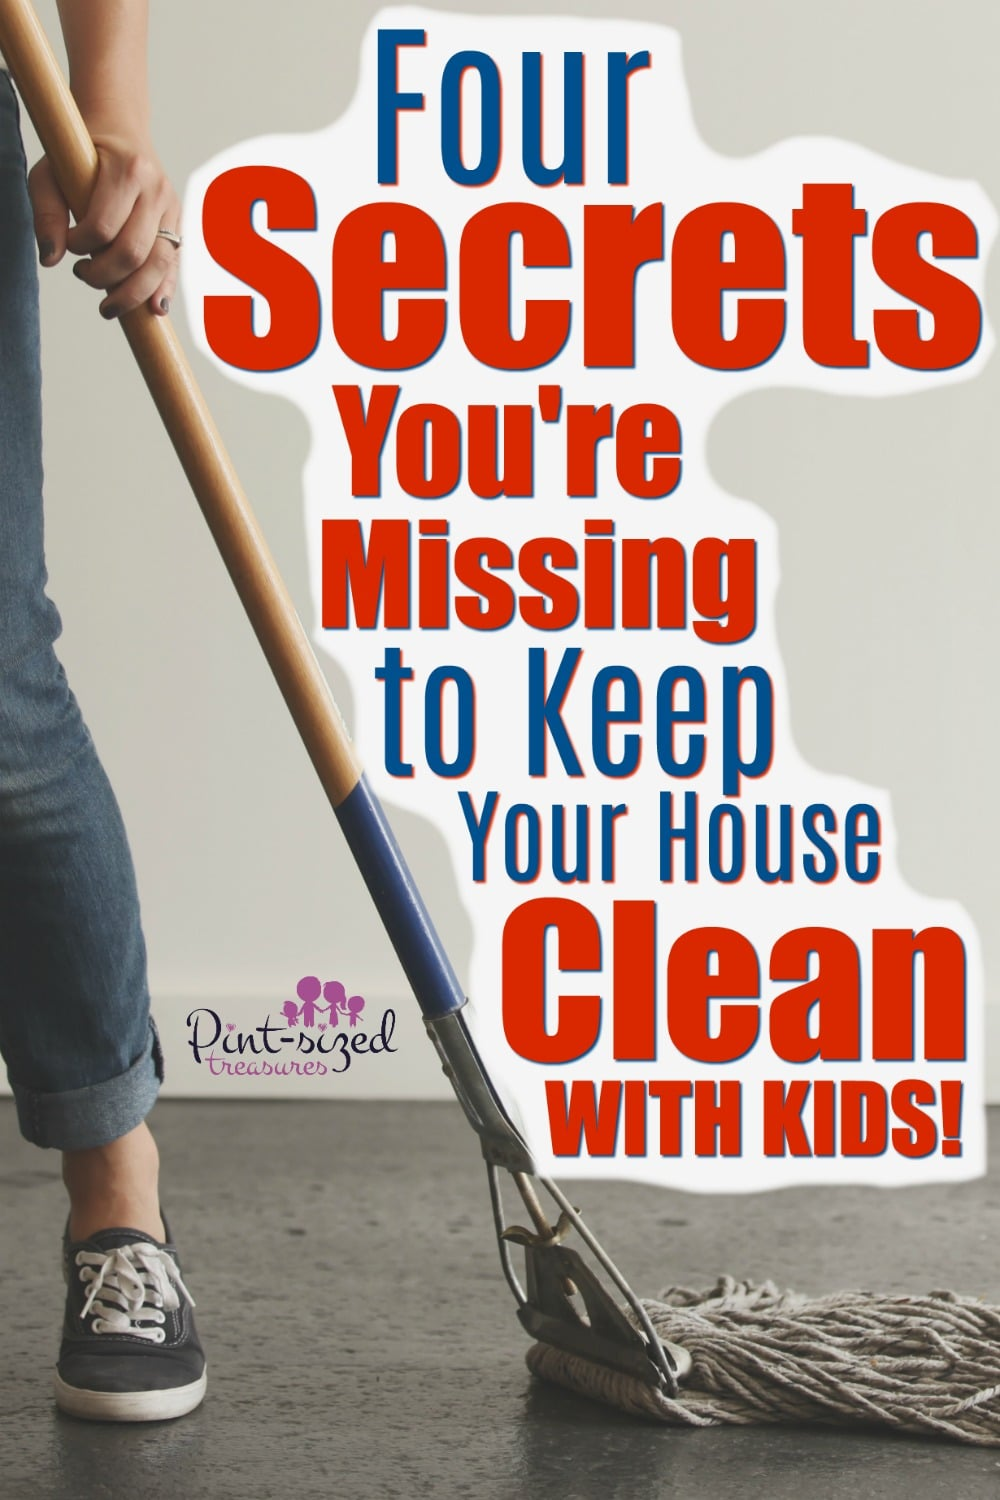 There are four secrets you could absolutely be missing about keeping your house clean when you have kids in the house! It IS possible to keep your house clean when kids are still living in your house, so find out HOW and what secrets you're missing about having a clean home!